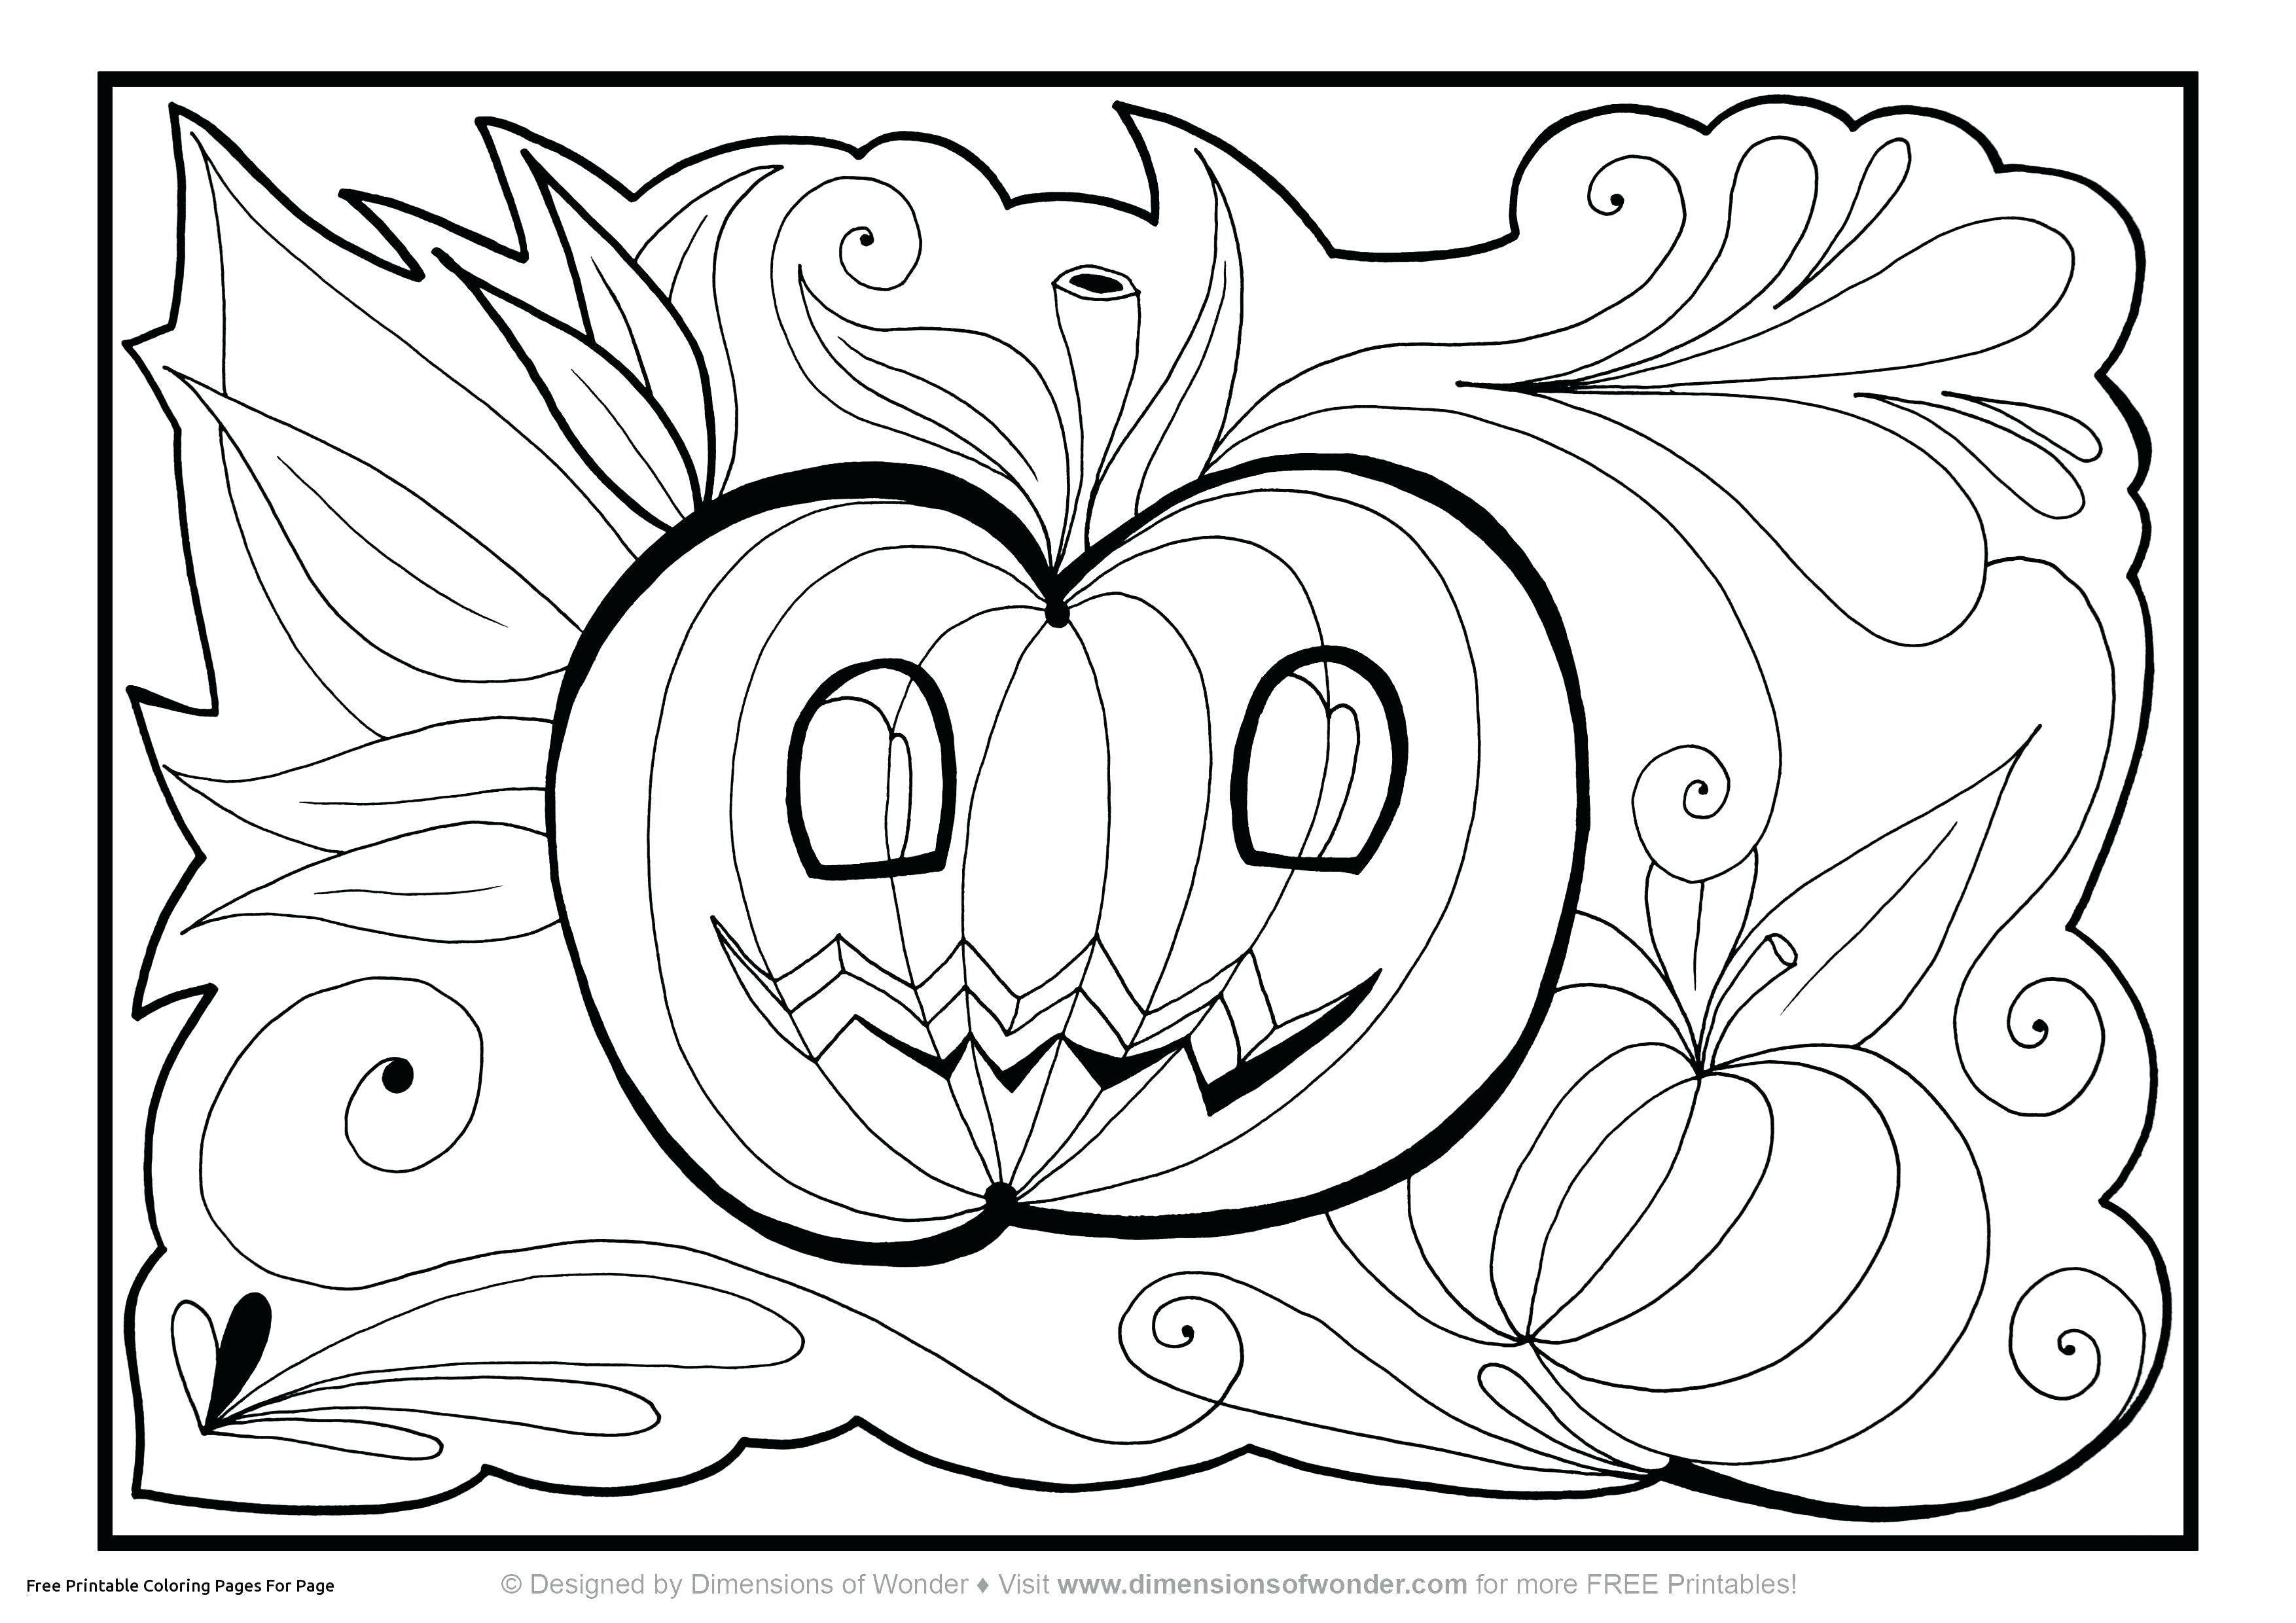 Music Notes Coloring Pages Elegant Music Note Coloring Page Regionpaper Halloween Coloring Pages Printable Pumpkin Coloring Pages Fall Coloring Pages [ 2480 x 3508 Pixel ]